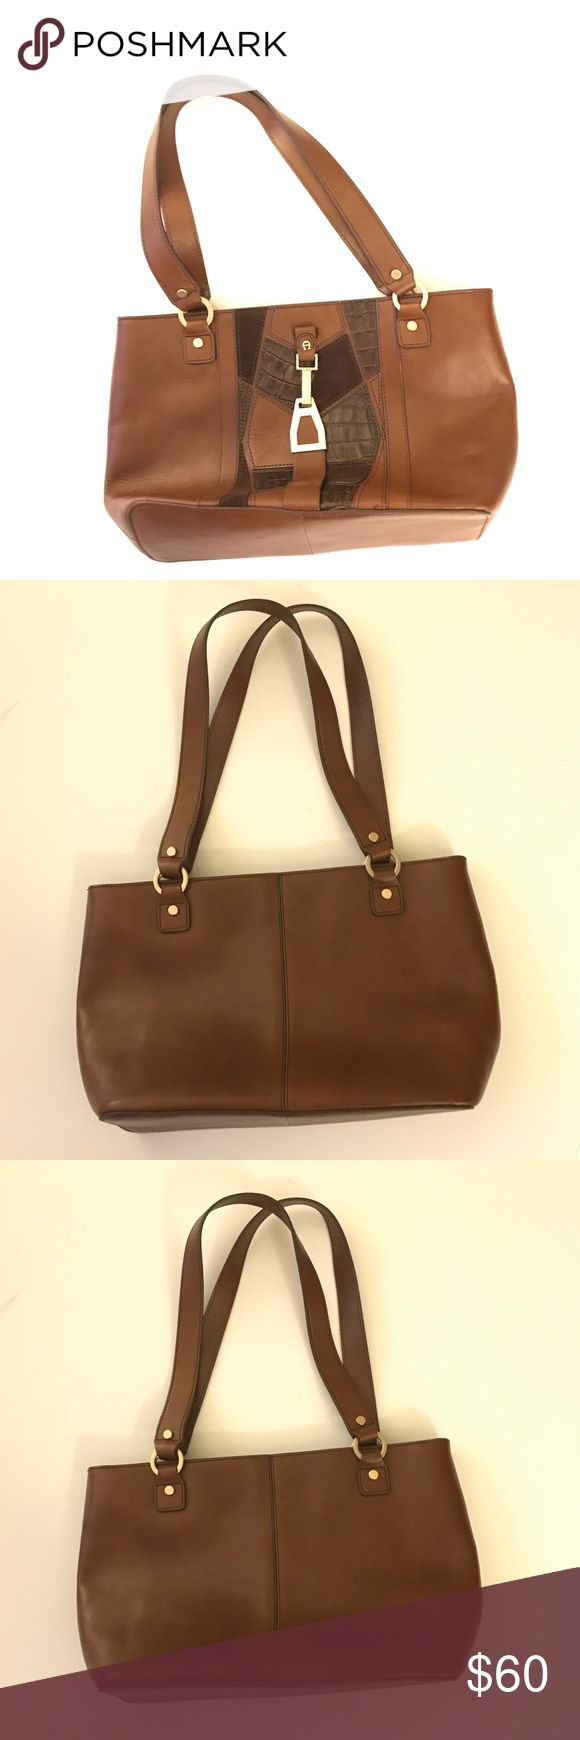 """NWOT Etienne Aigner Brown Shoulder Bag Gorgeous brown shoulder bag with detailing in the front! The bag is new and has never been used. It measures 16"""" inches wide and 9"""" in length. Etienne Aigner Bags Shoulder Bags"""